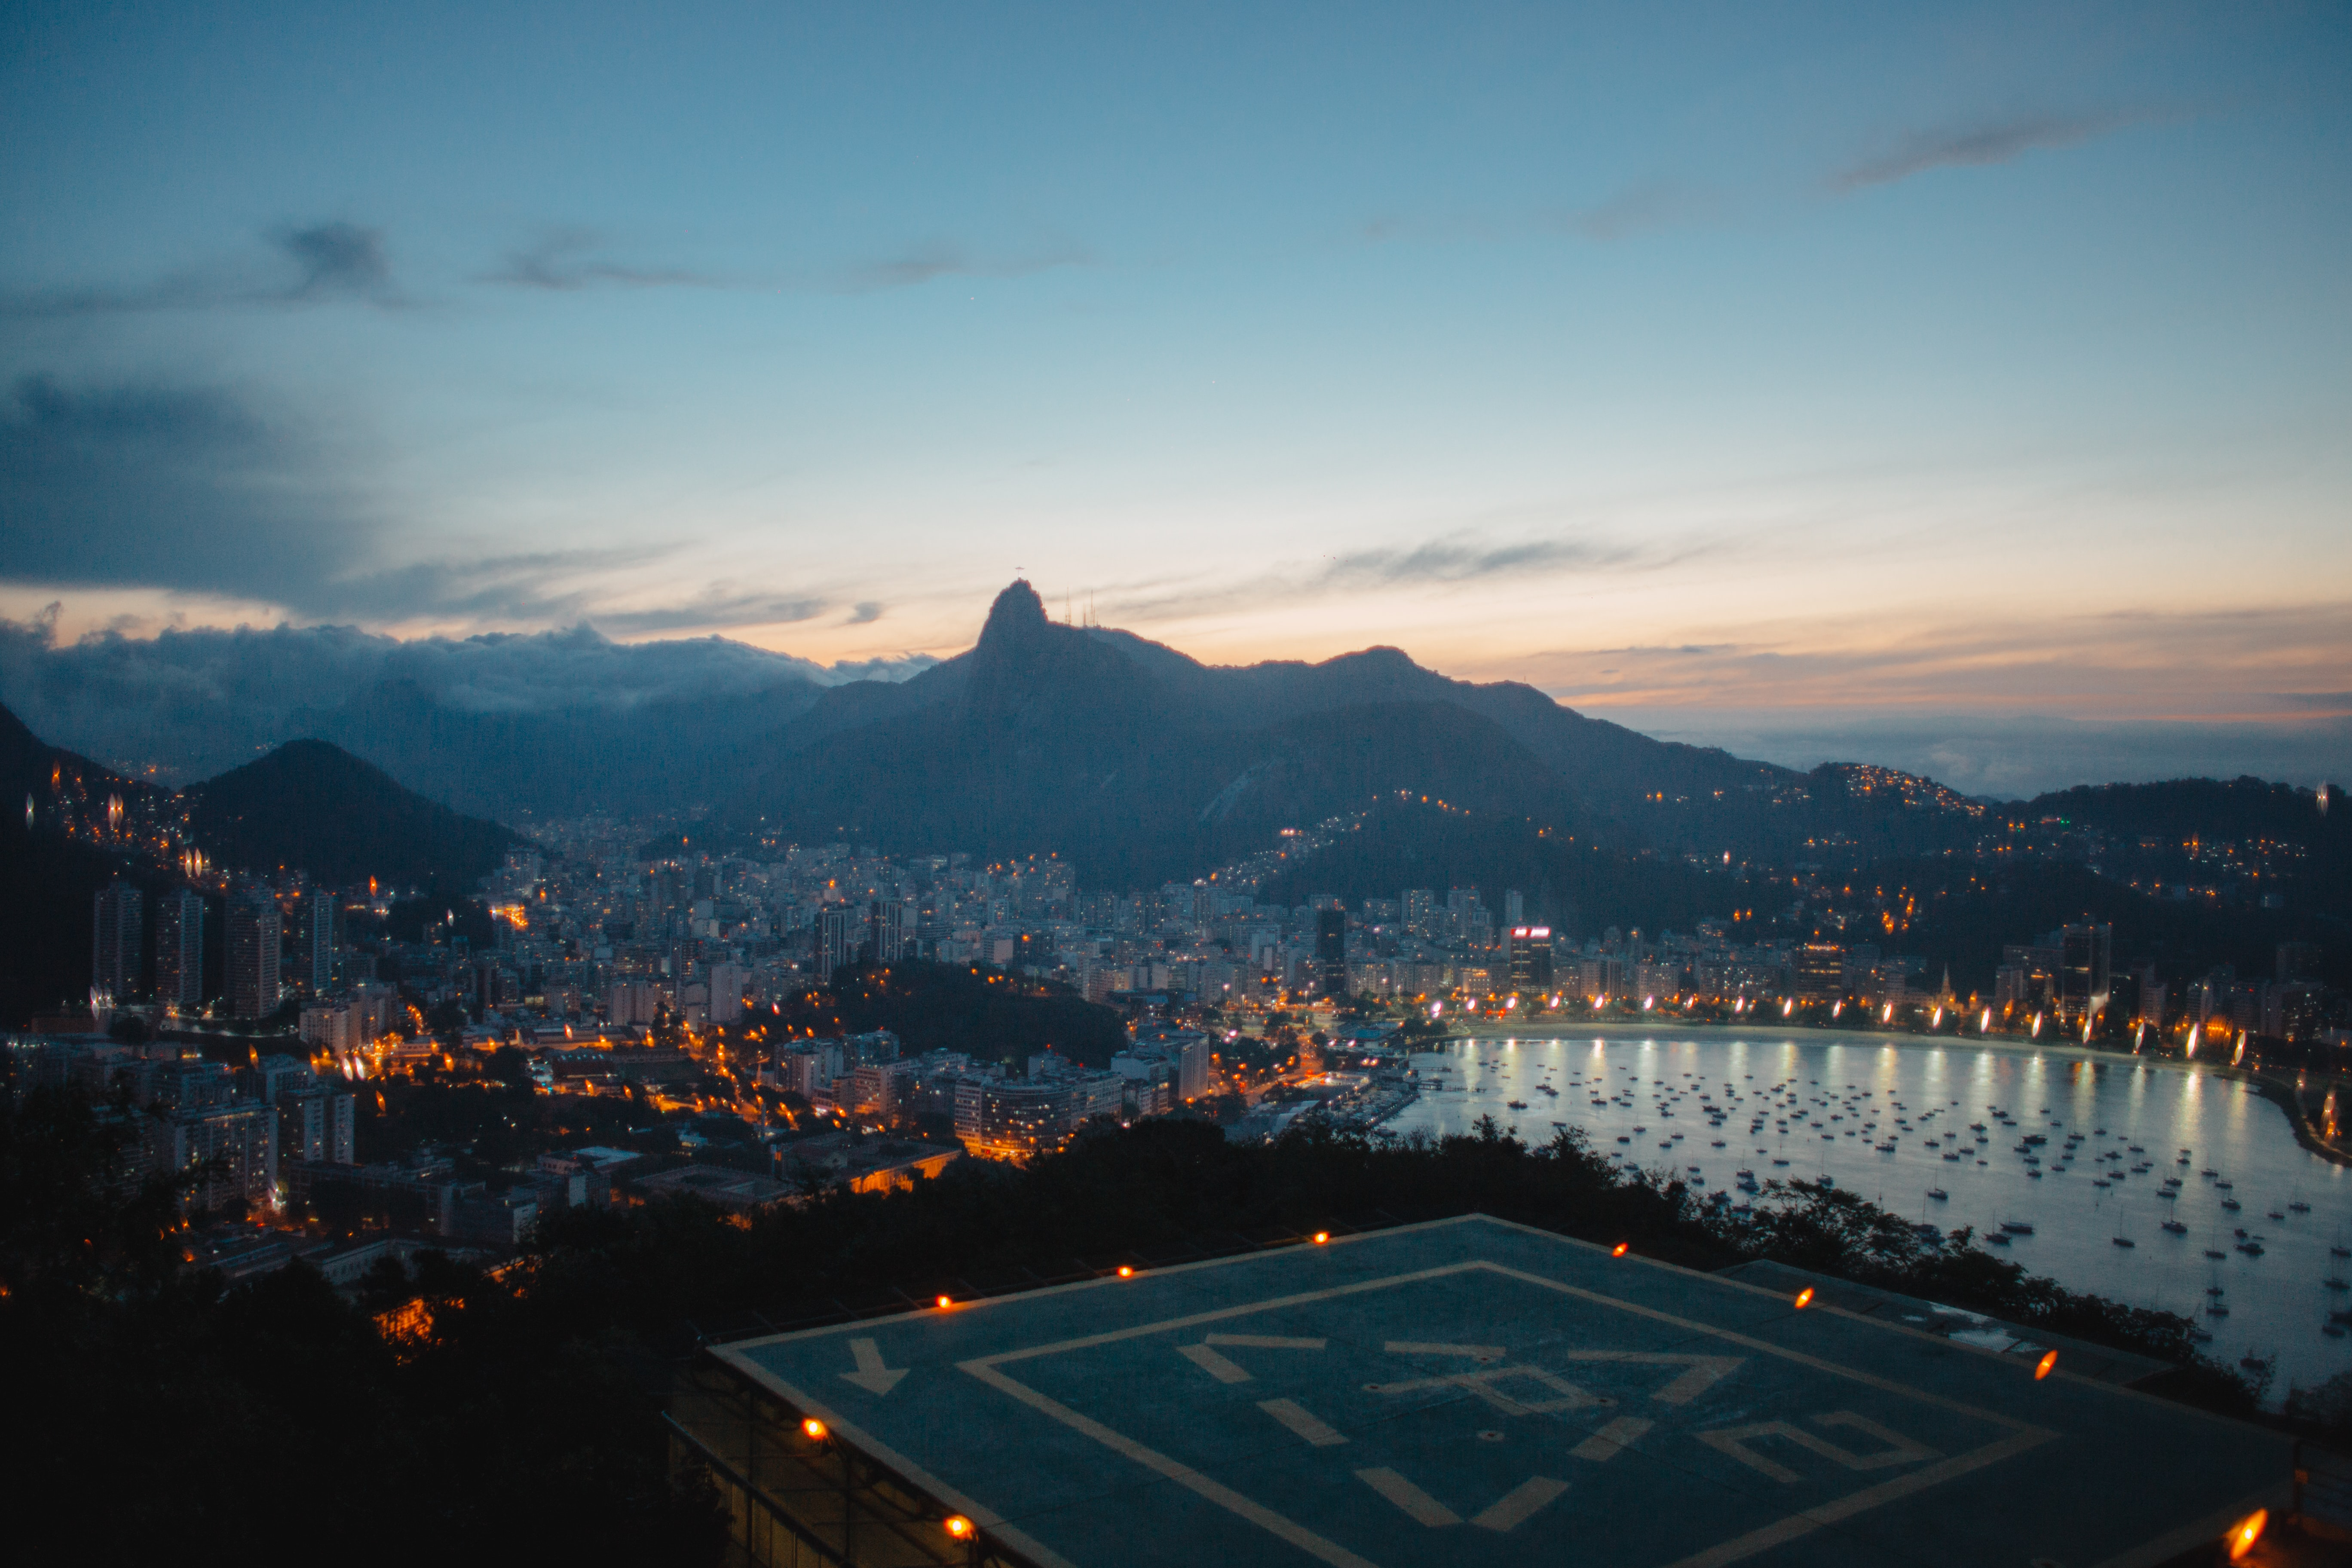 aerial photography of buildings and mountains at blue hour